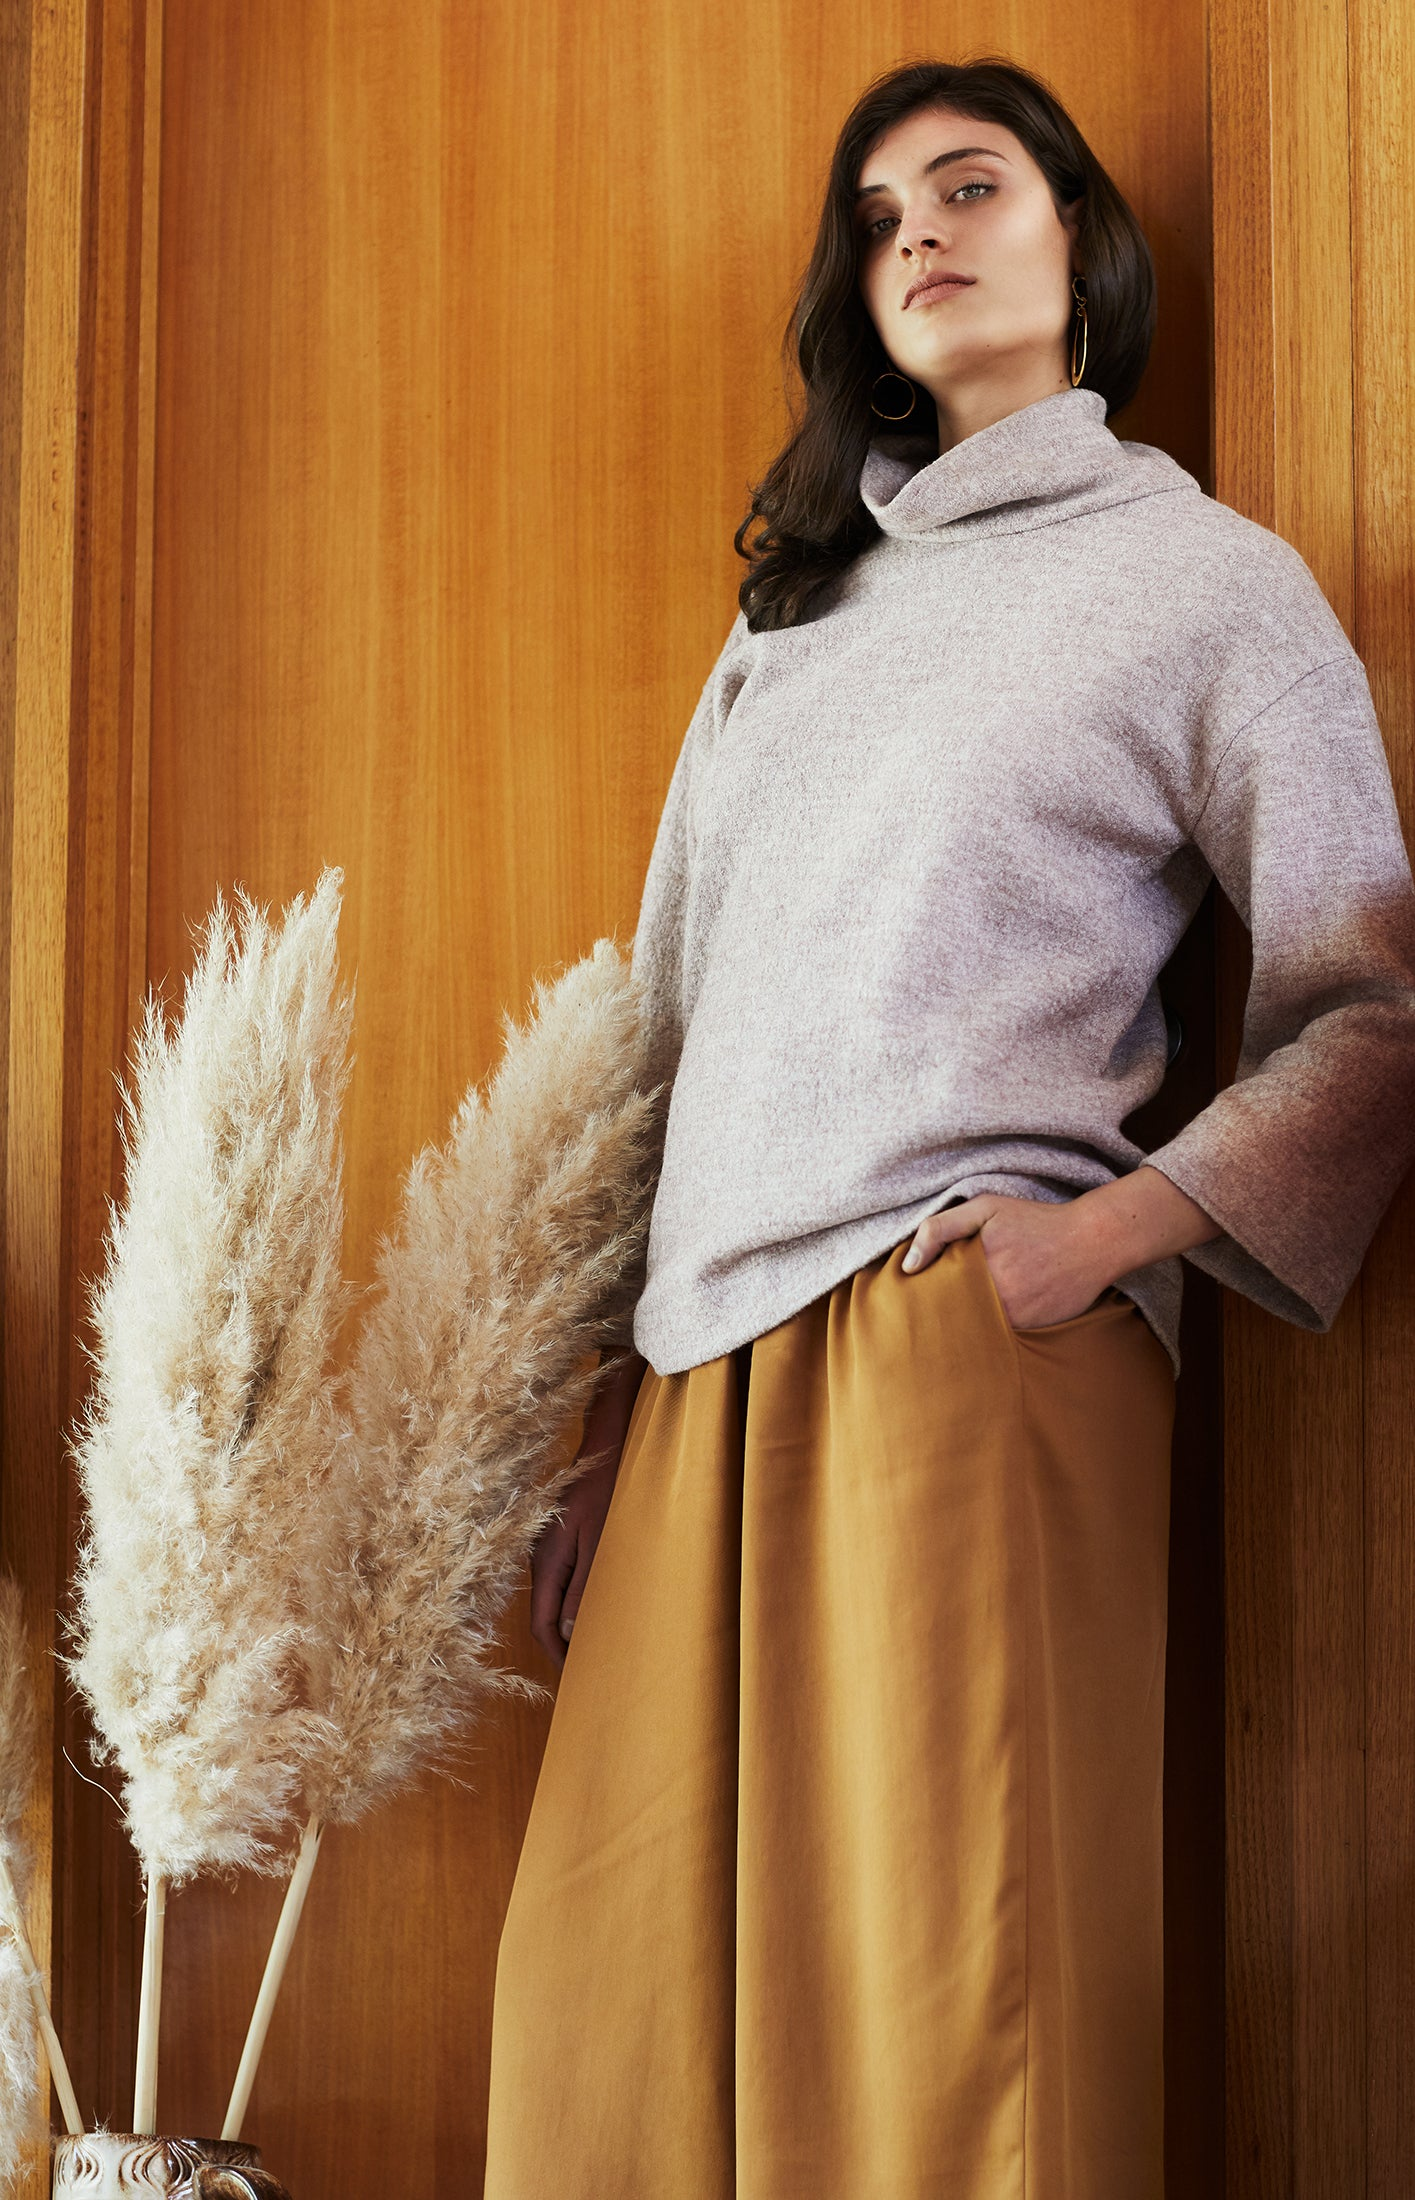 keegan AW19 Woodland Campaign Ethical Fashion Made in Melbourne Australia Cream Wool Jumper